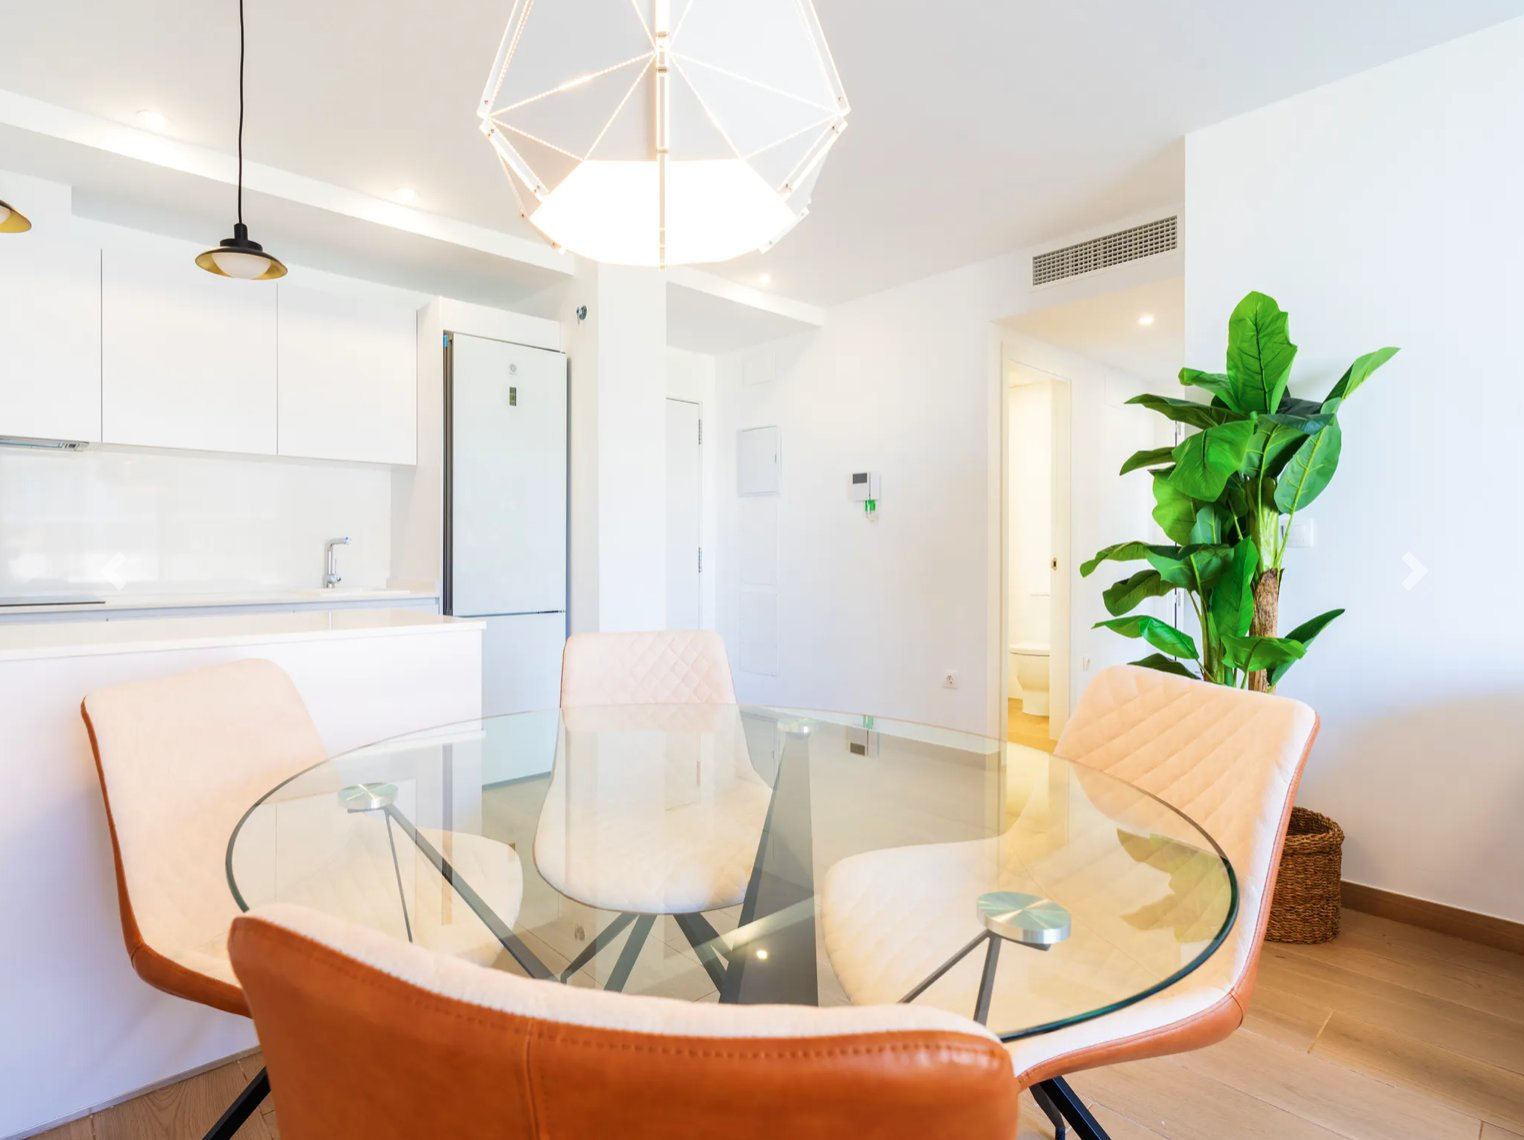 Apartment with 1 bedroom in new complex